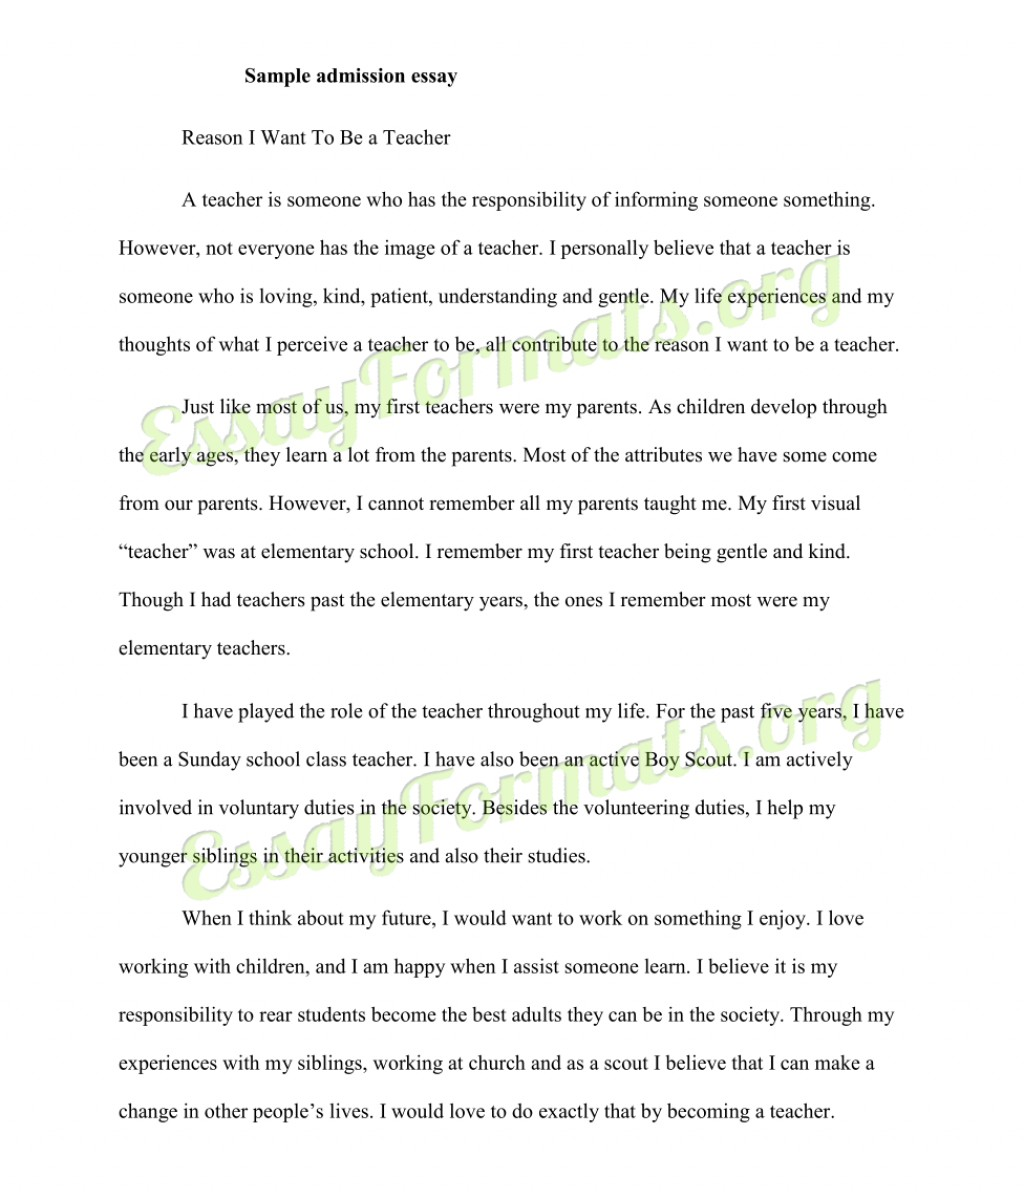 003 How To Write College Essay Format Breathtaking A Application Scholarship Large